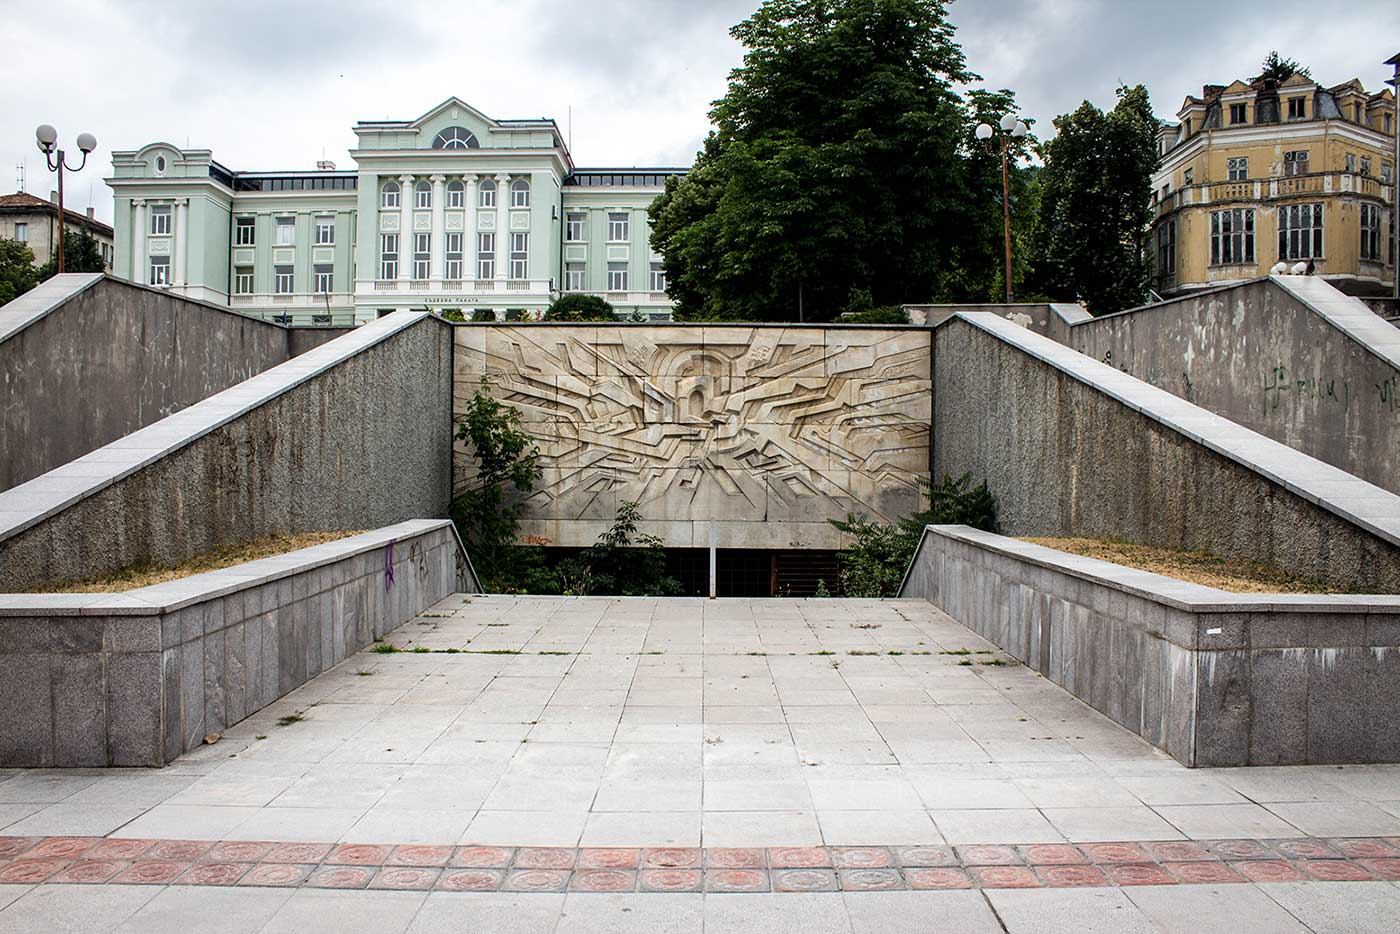 A modernist relief decorates one of the subterranean entrances to Central City Square, Shumen, Bulgaria.